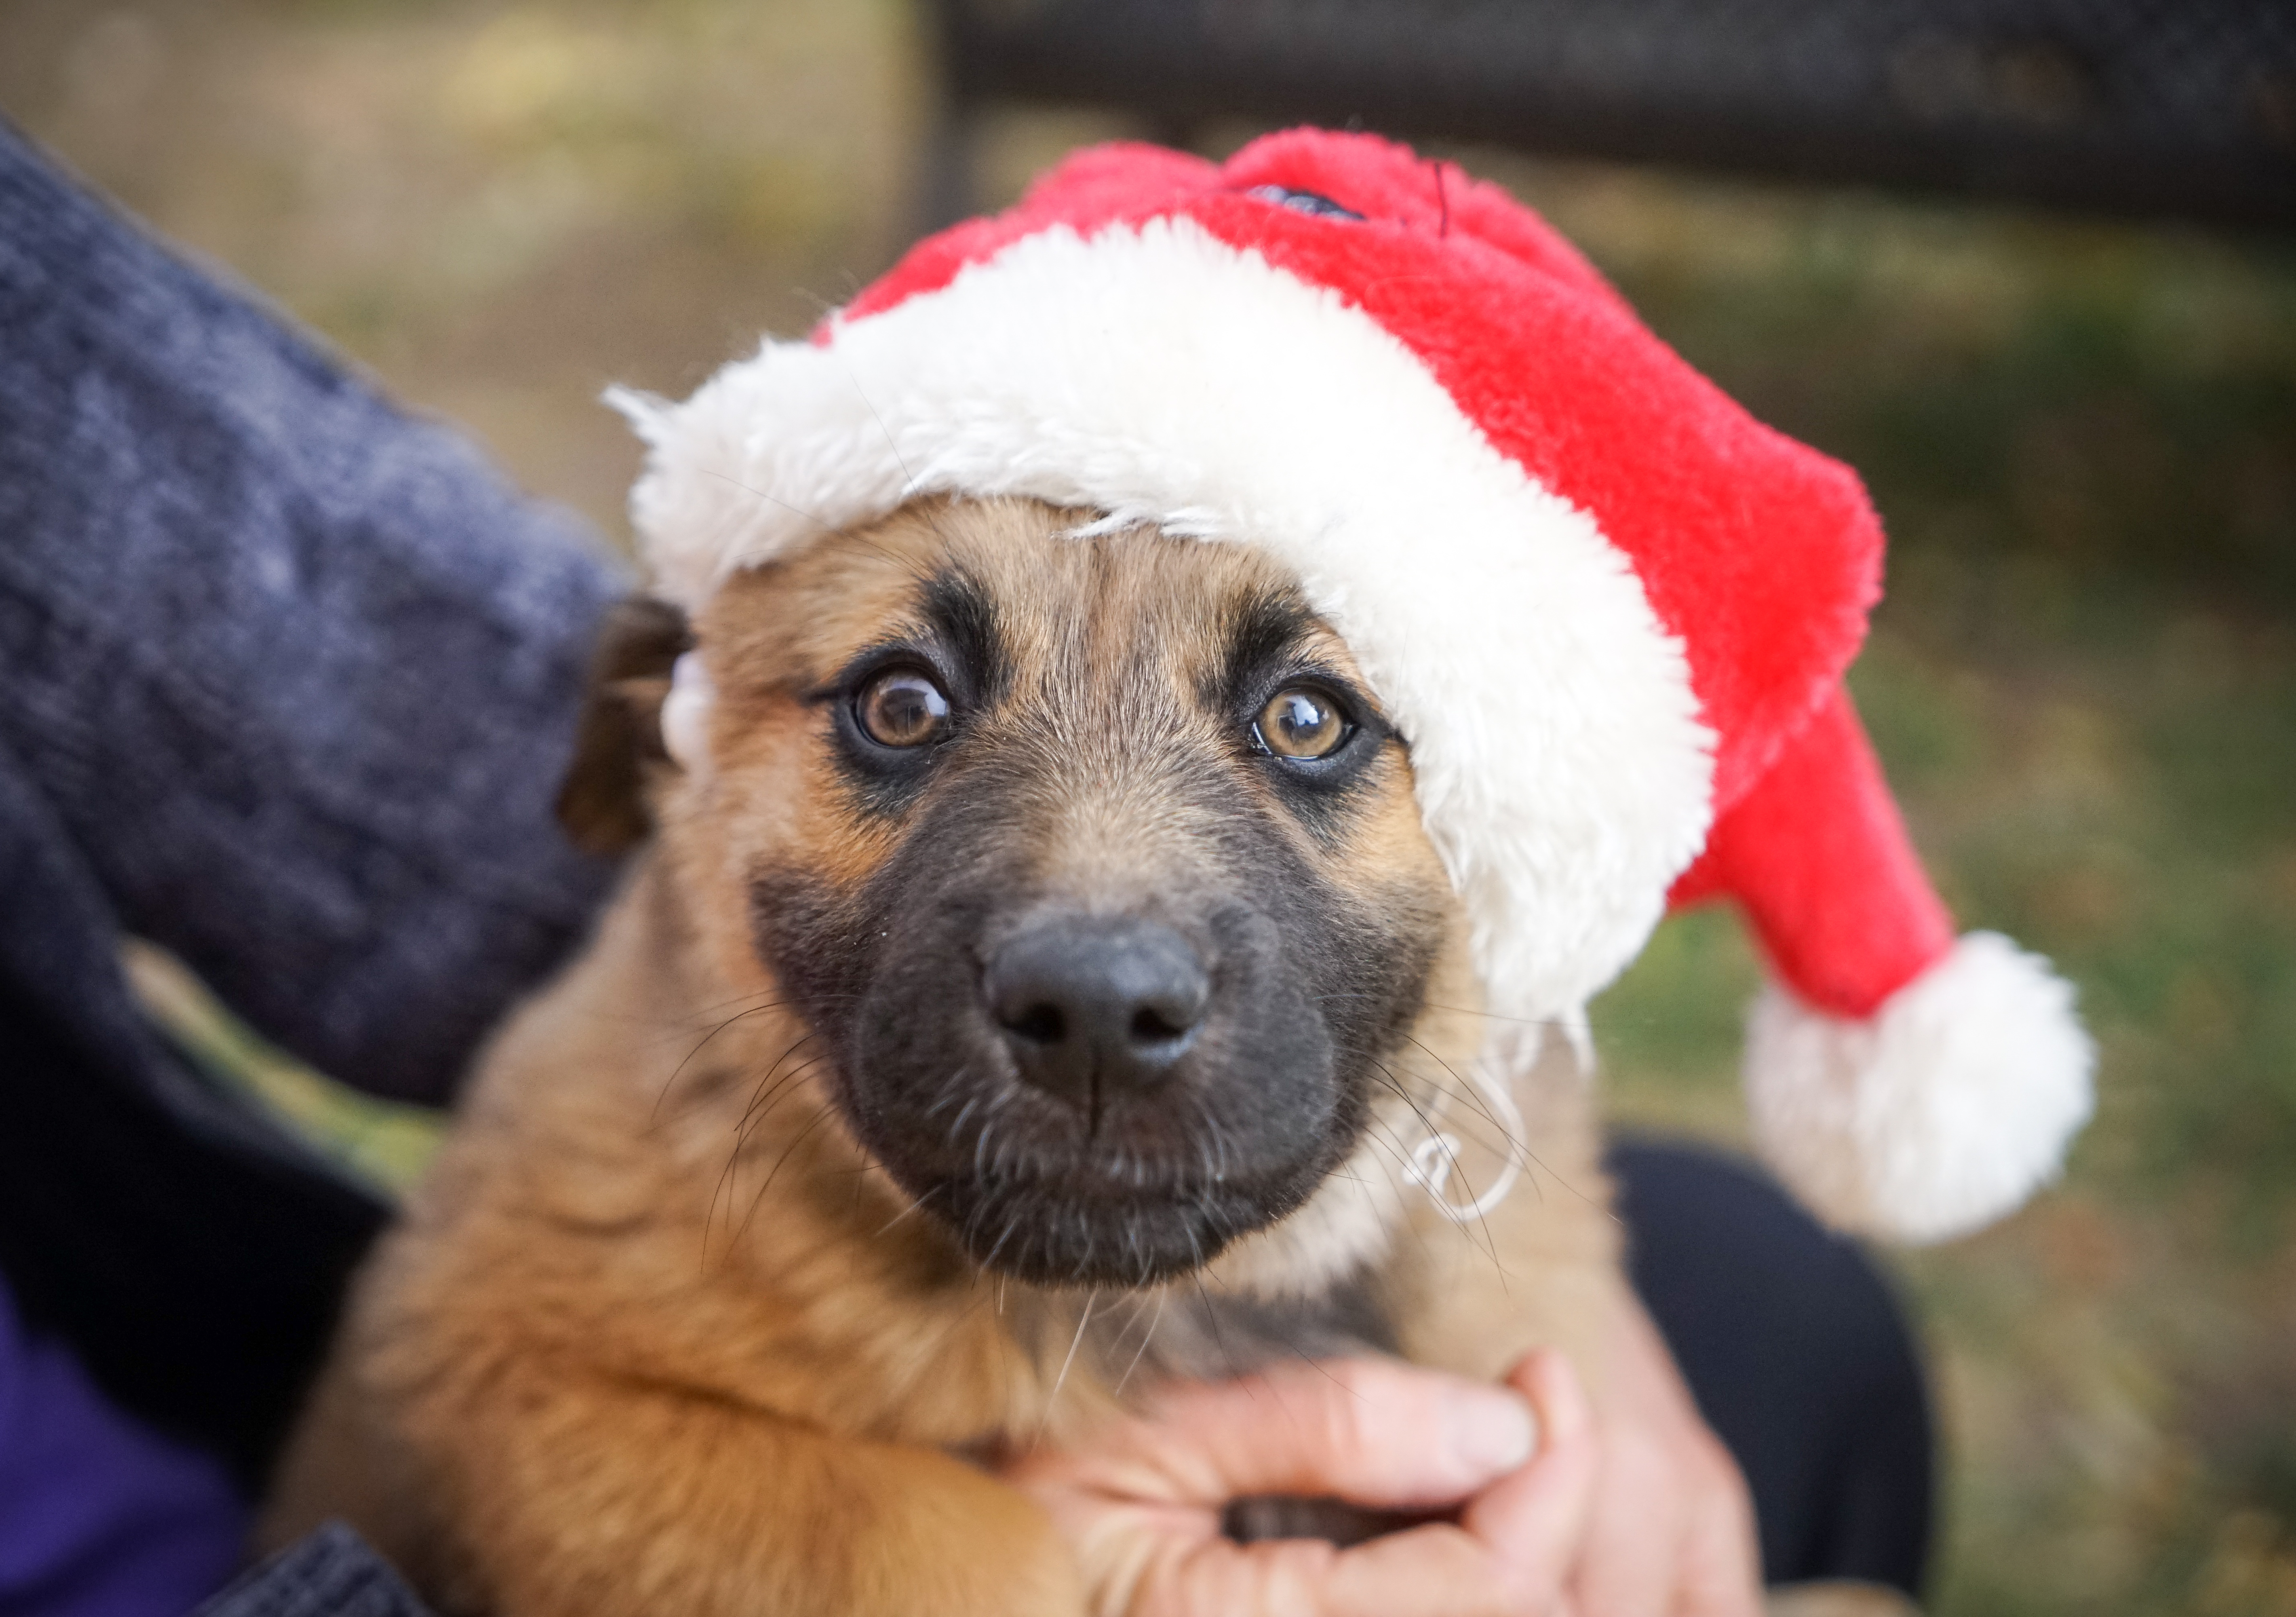 This and the other two shots with santa hats on puppies, is from a shoot I did to promote a local puppy rescue organization: lisaparkerspuppies.com We've fostered over 30 puppies with LPP. The pups inspire me to get out and take pics! Remember to adopt-don't-buy your next best friend.